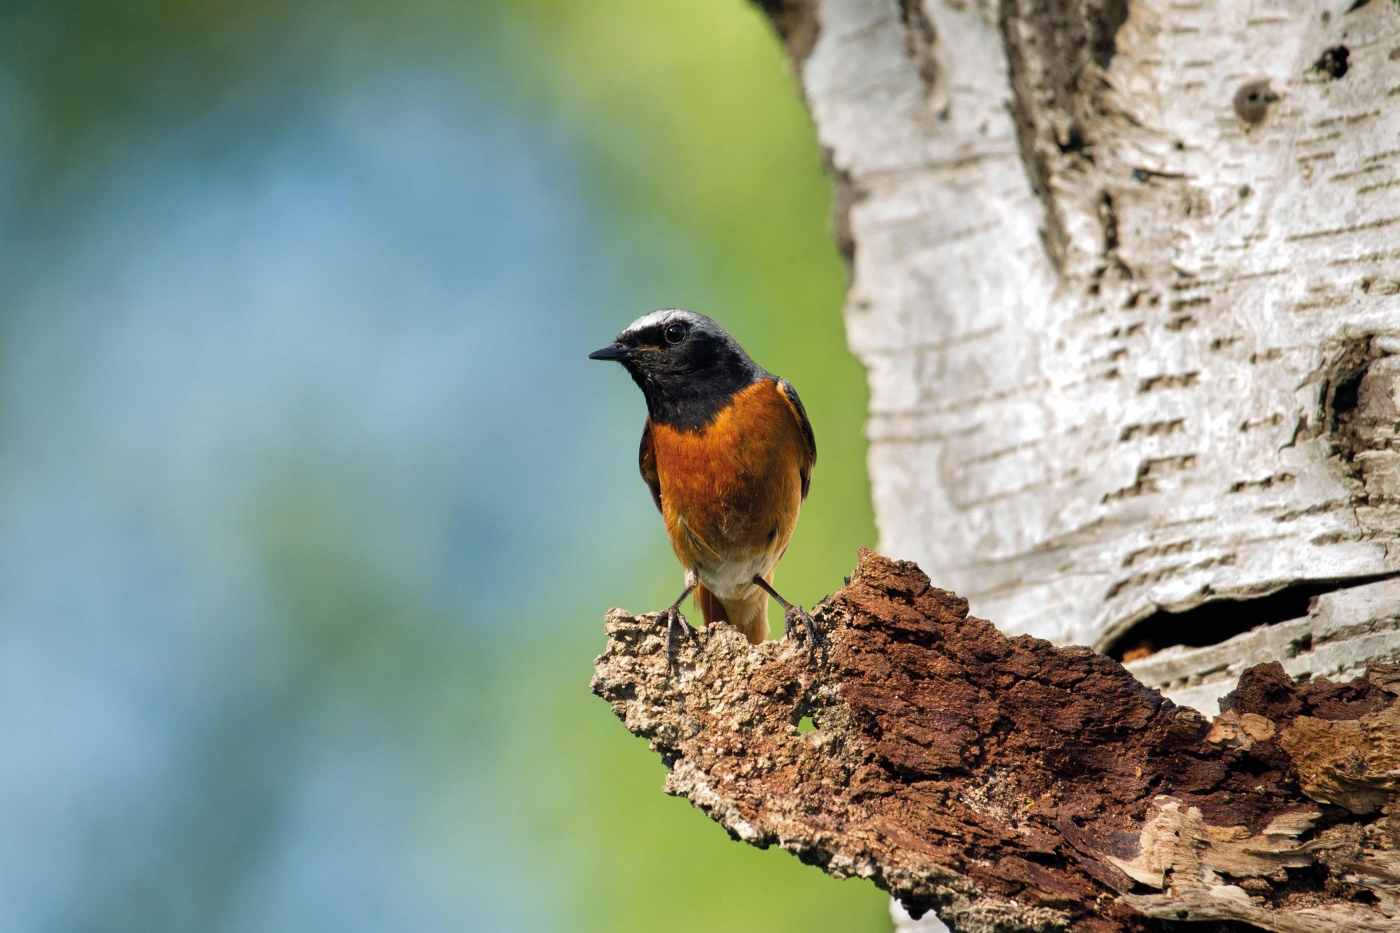 Redstart Phoenicurus phoenicurus, male standing on old piece of bark on silverbirch tree